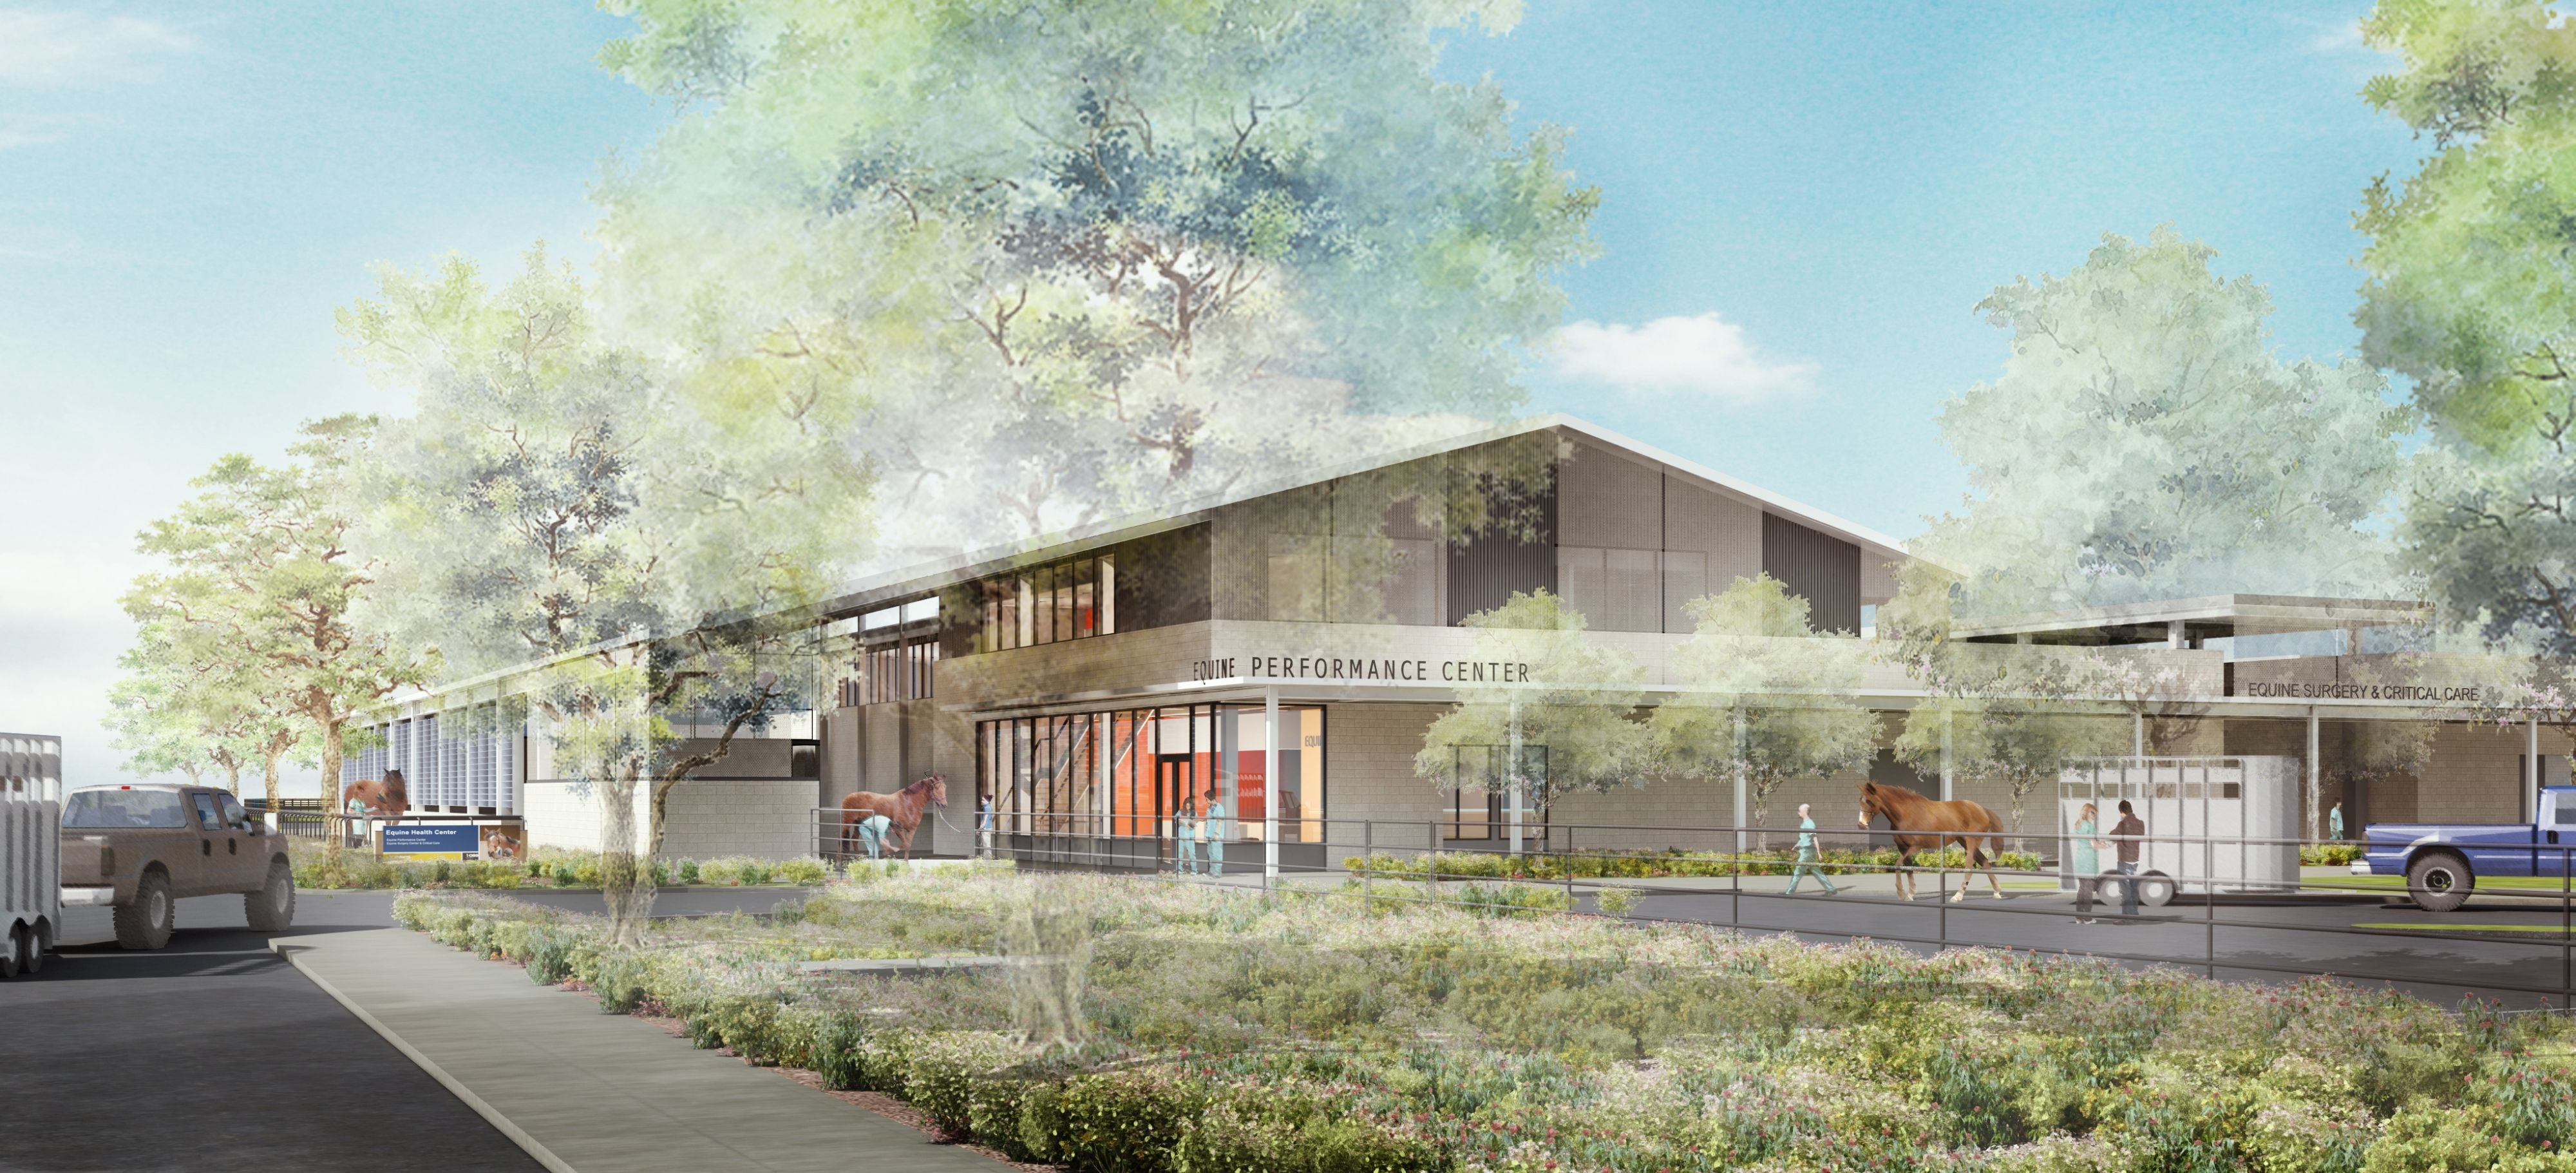 Artist rendering of the future Equine Performance Center at UC Davis.